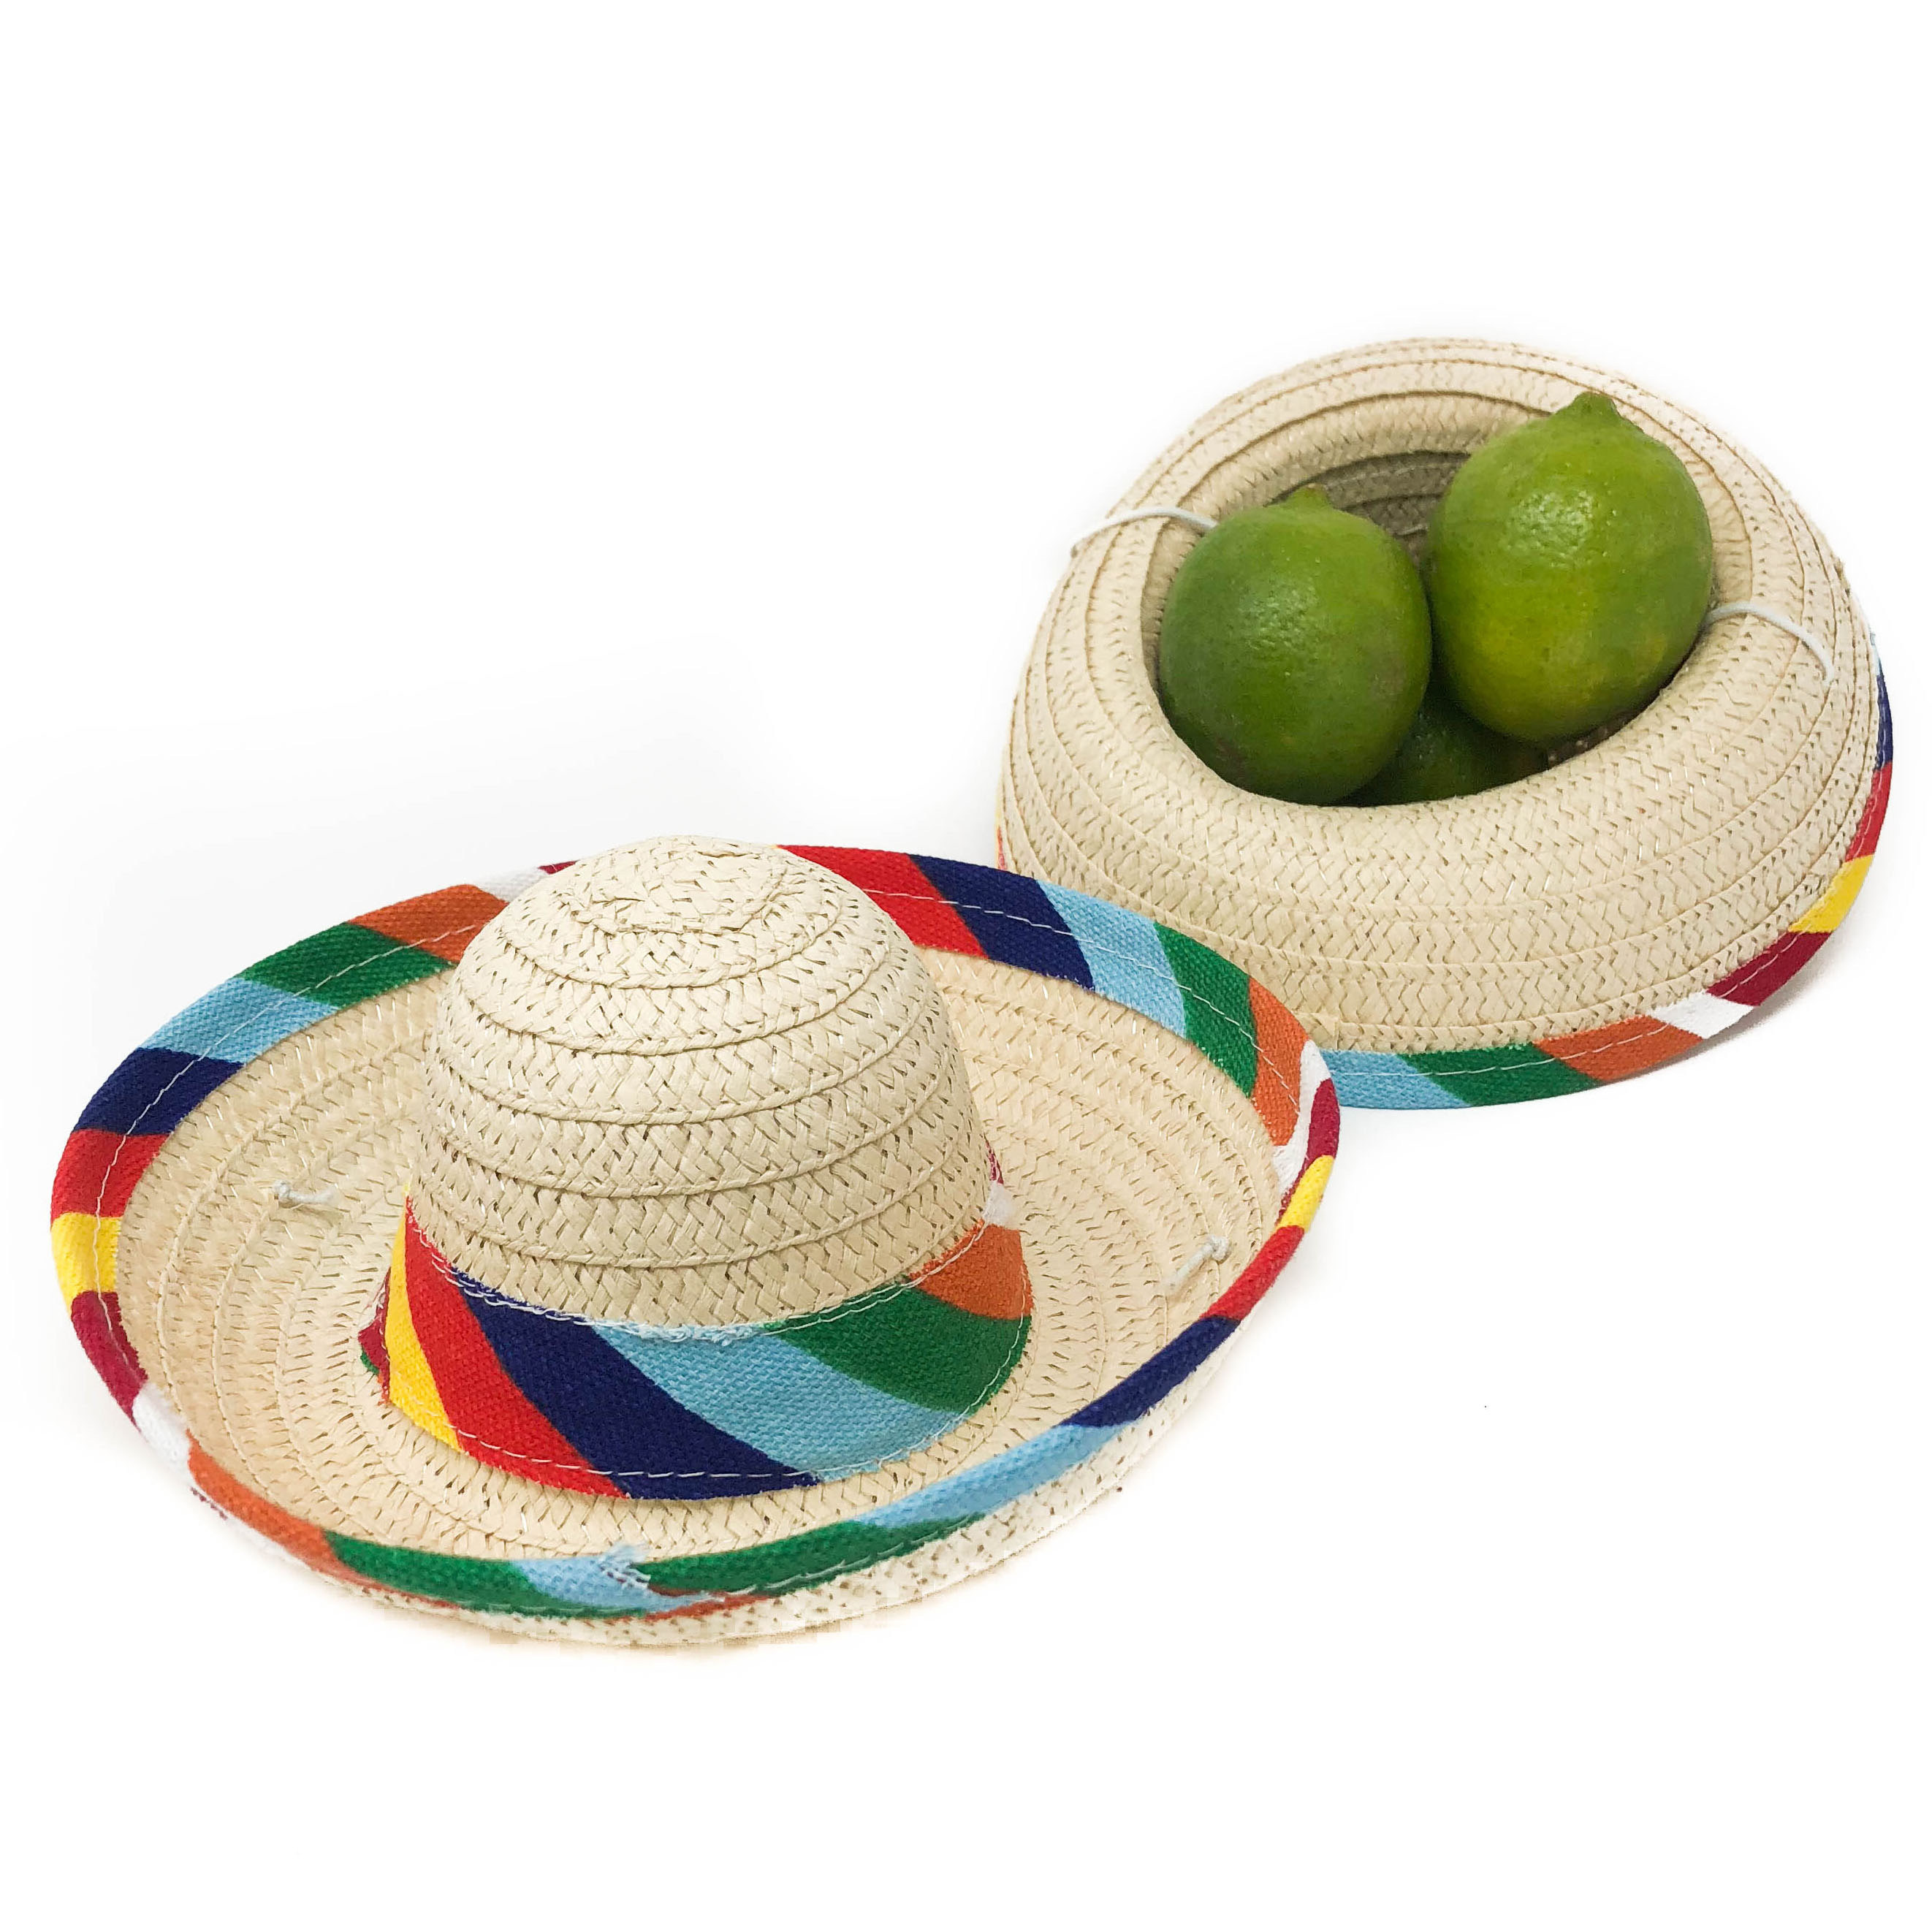 12 Mini Sombrero Fiesta Party Supplies - Mexican Themed Party Decorations (1 dozen)